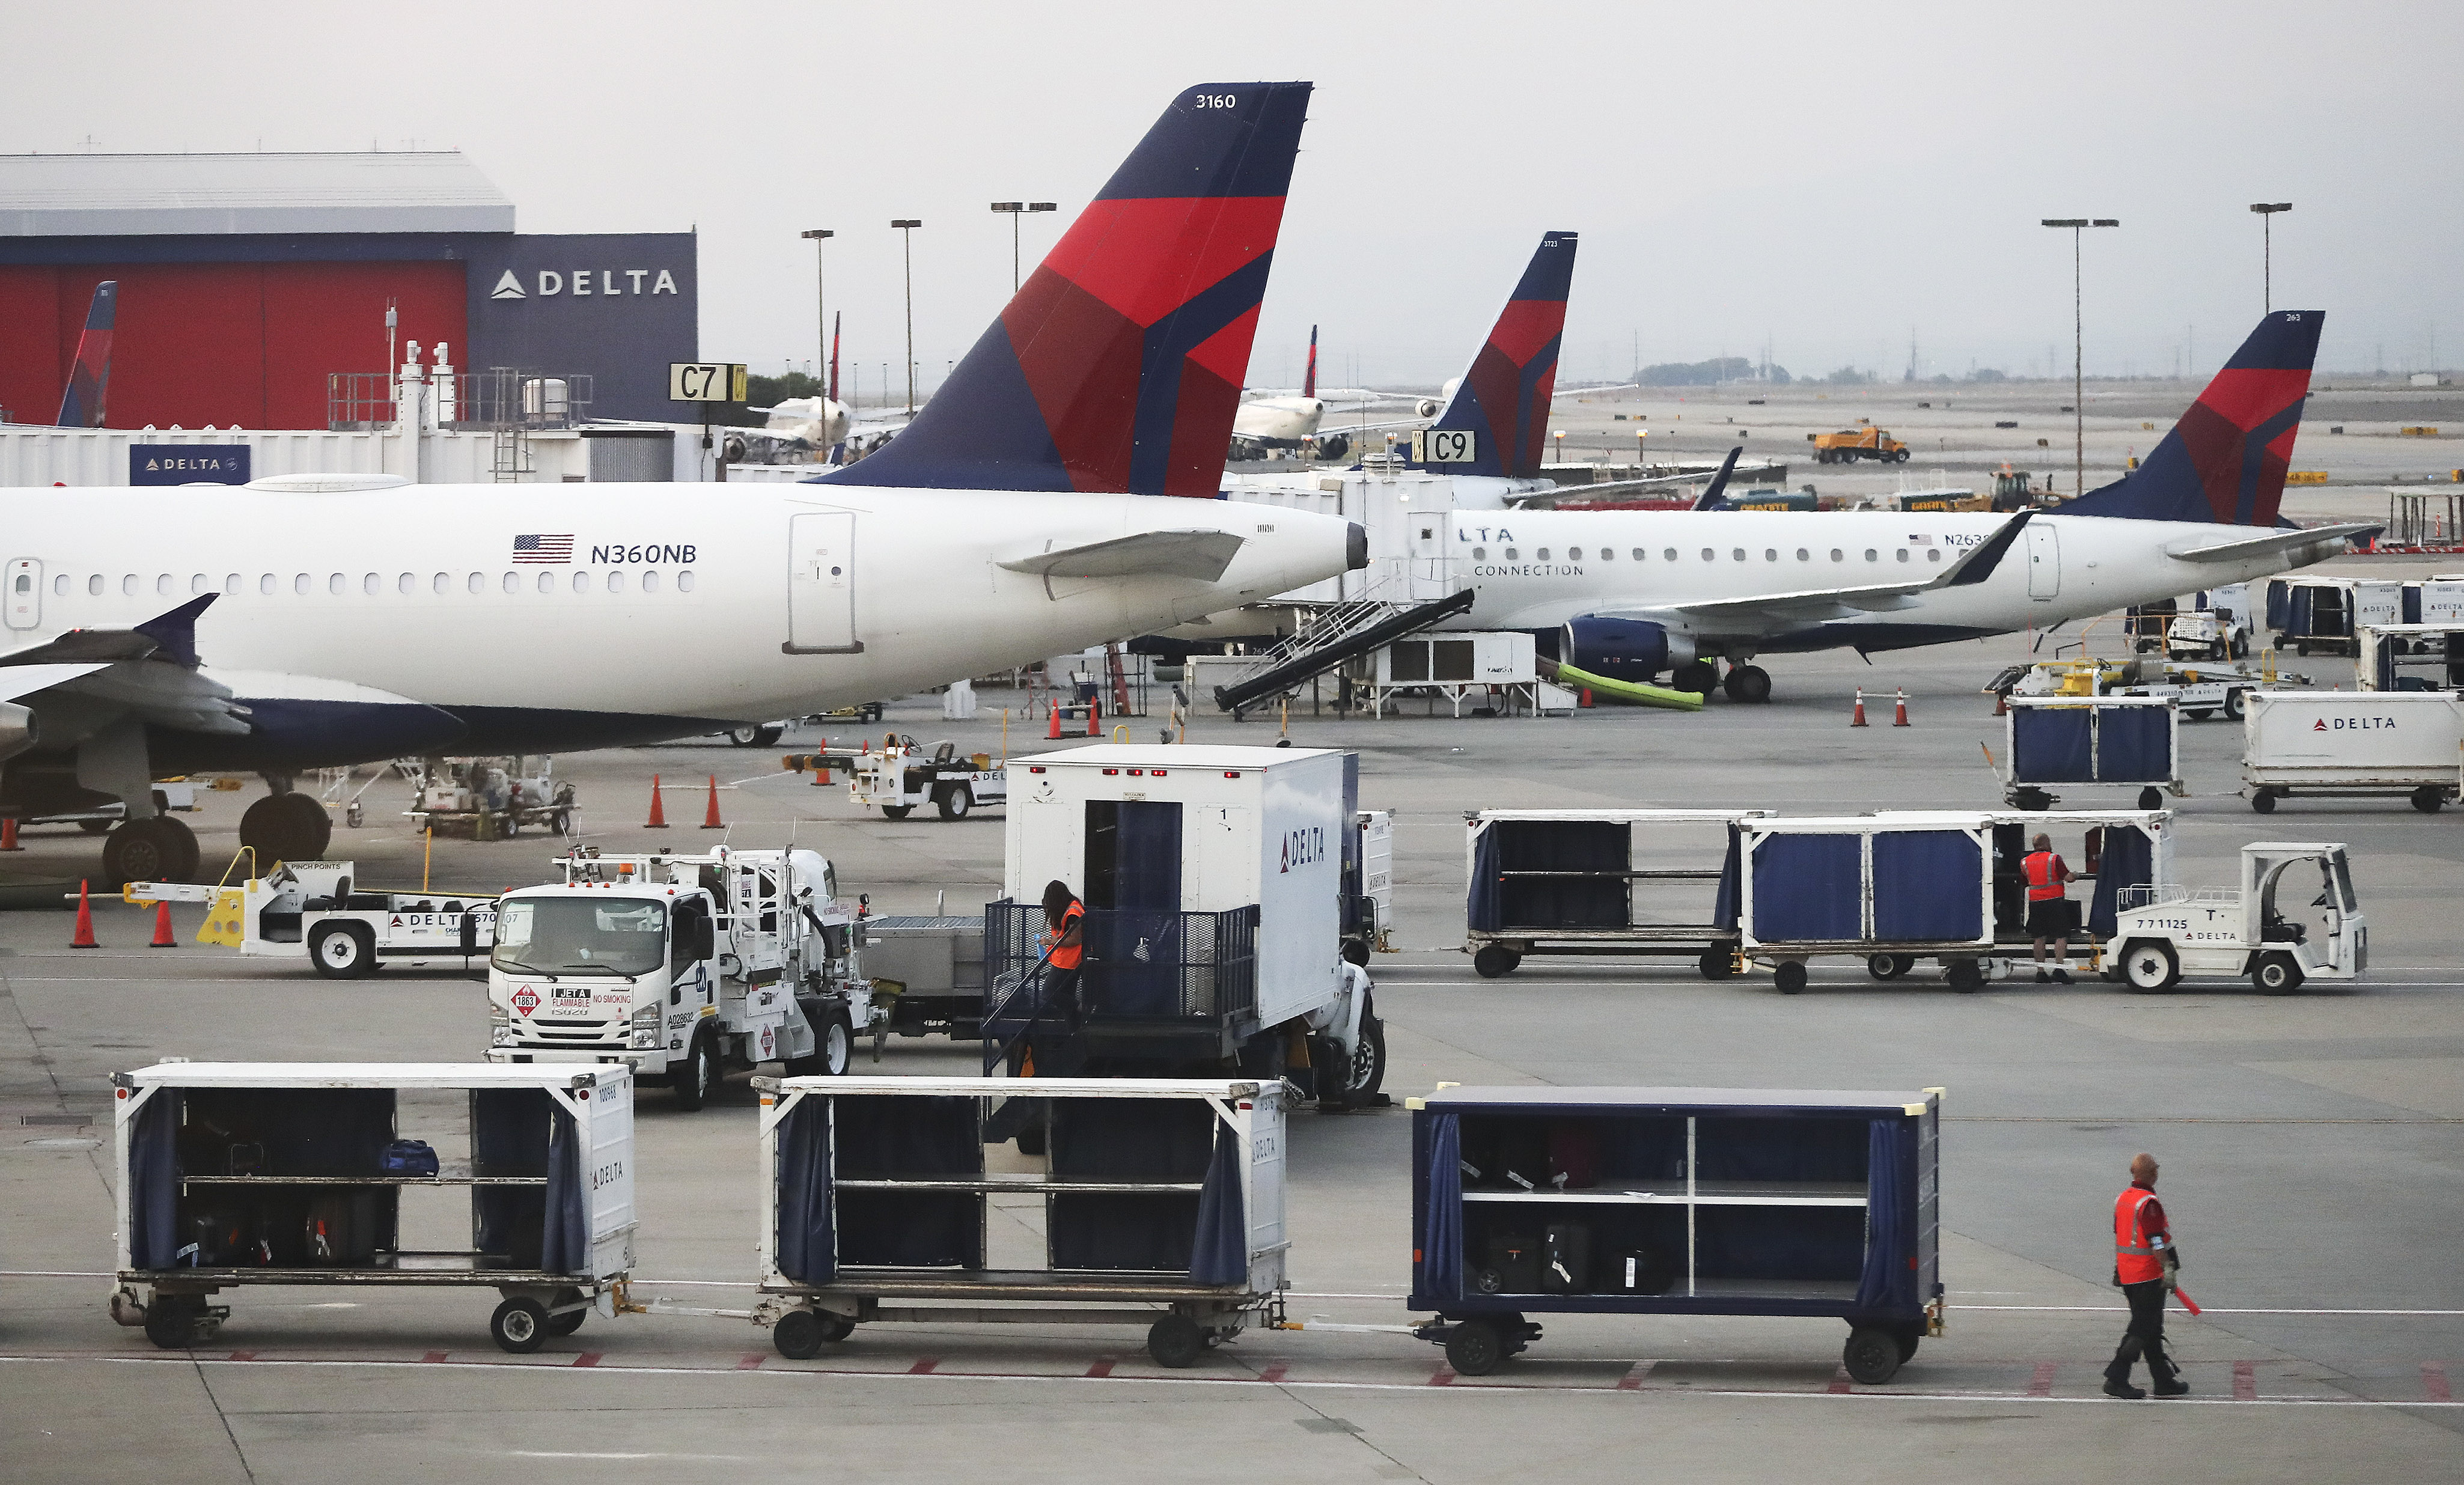 Airplanes are at the ready at Salt Lake City International Airport.